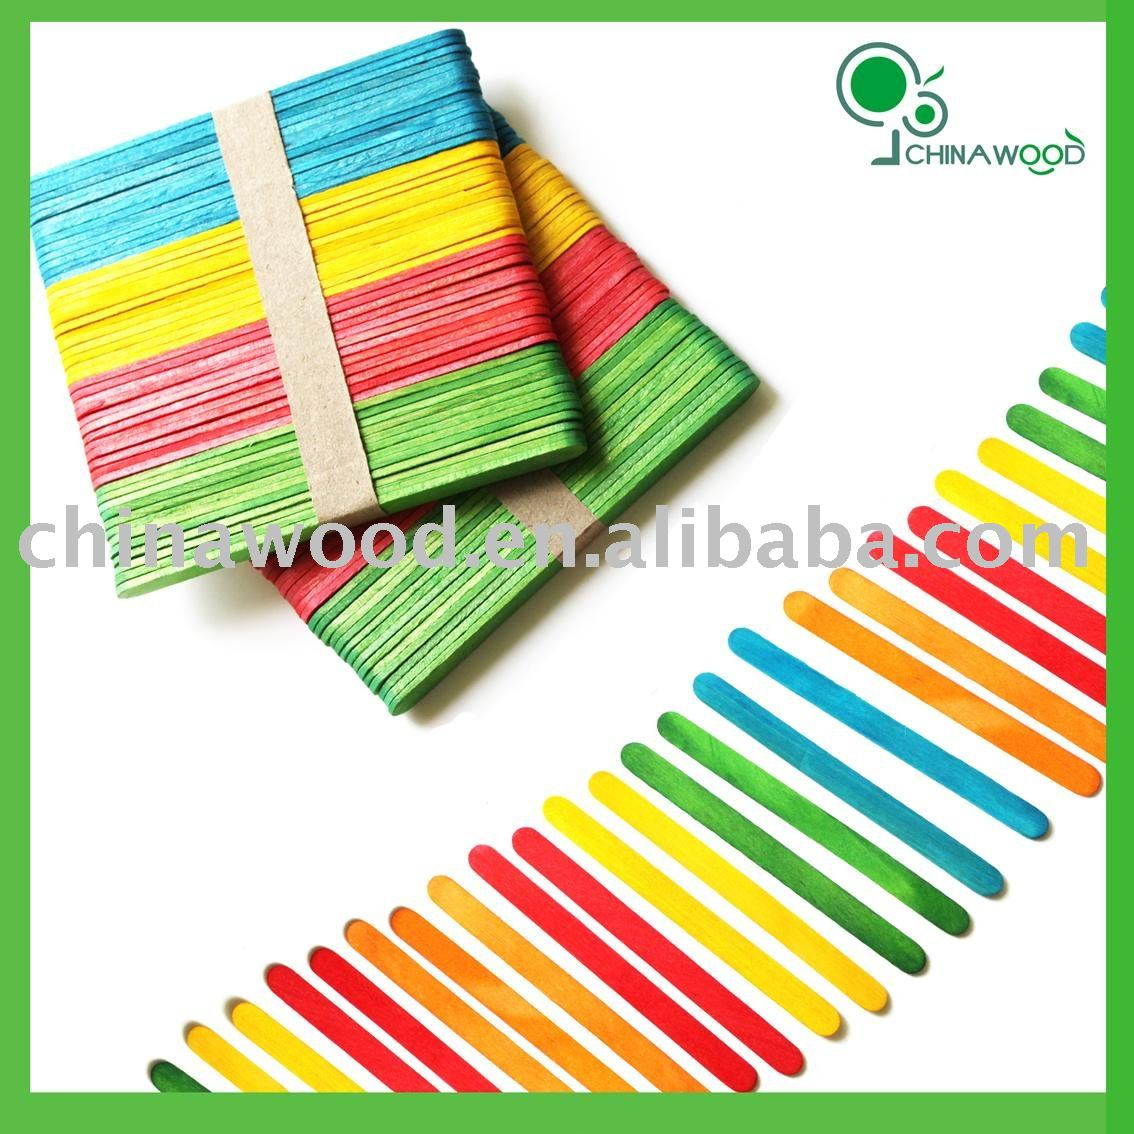 Assorted Colored Craft Wood Popsicle sticks 4 and 1/2""